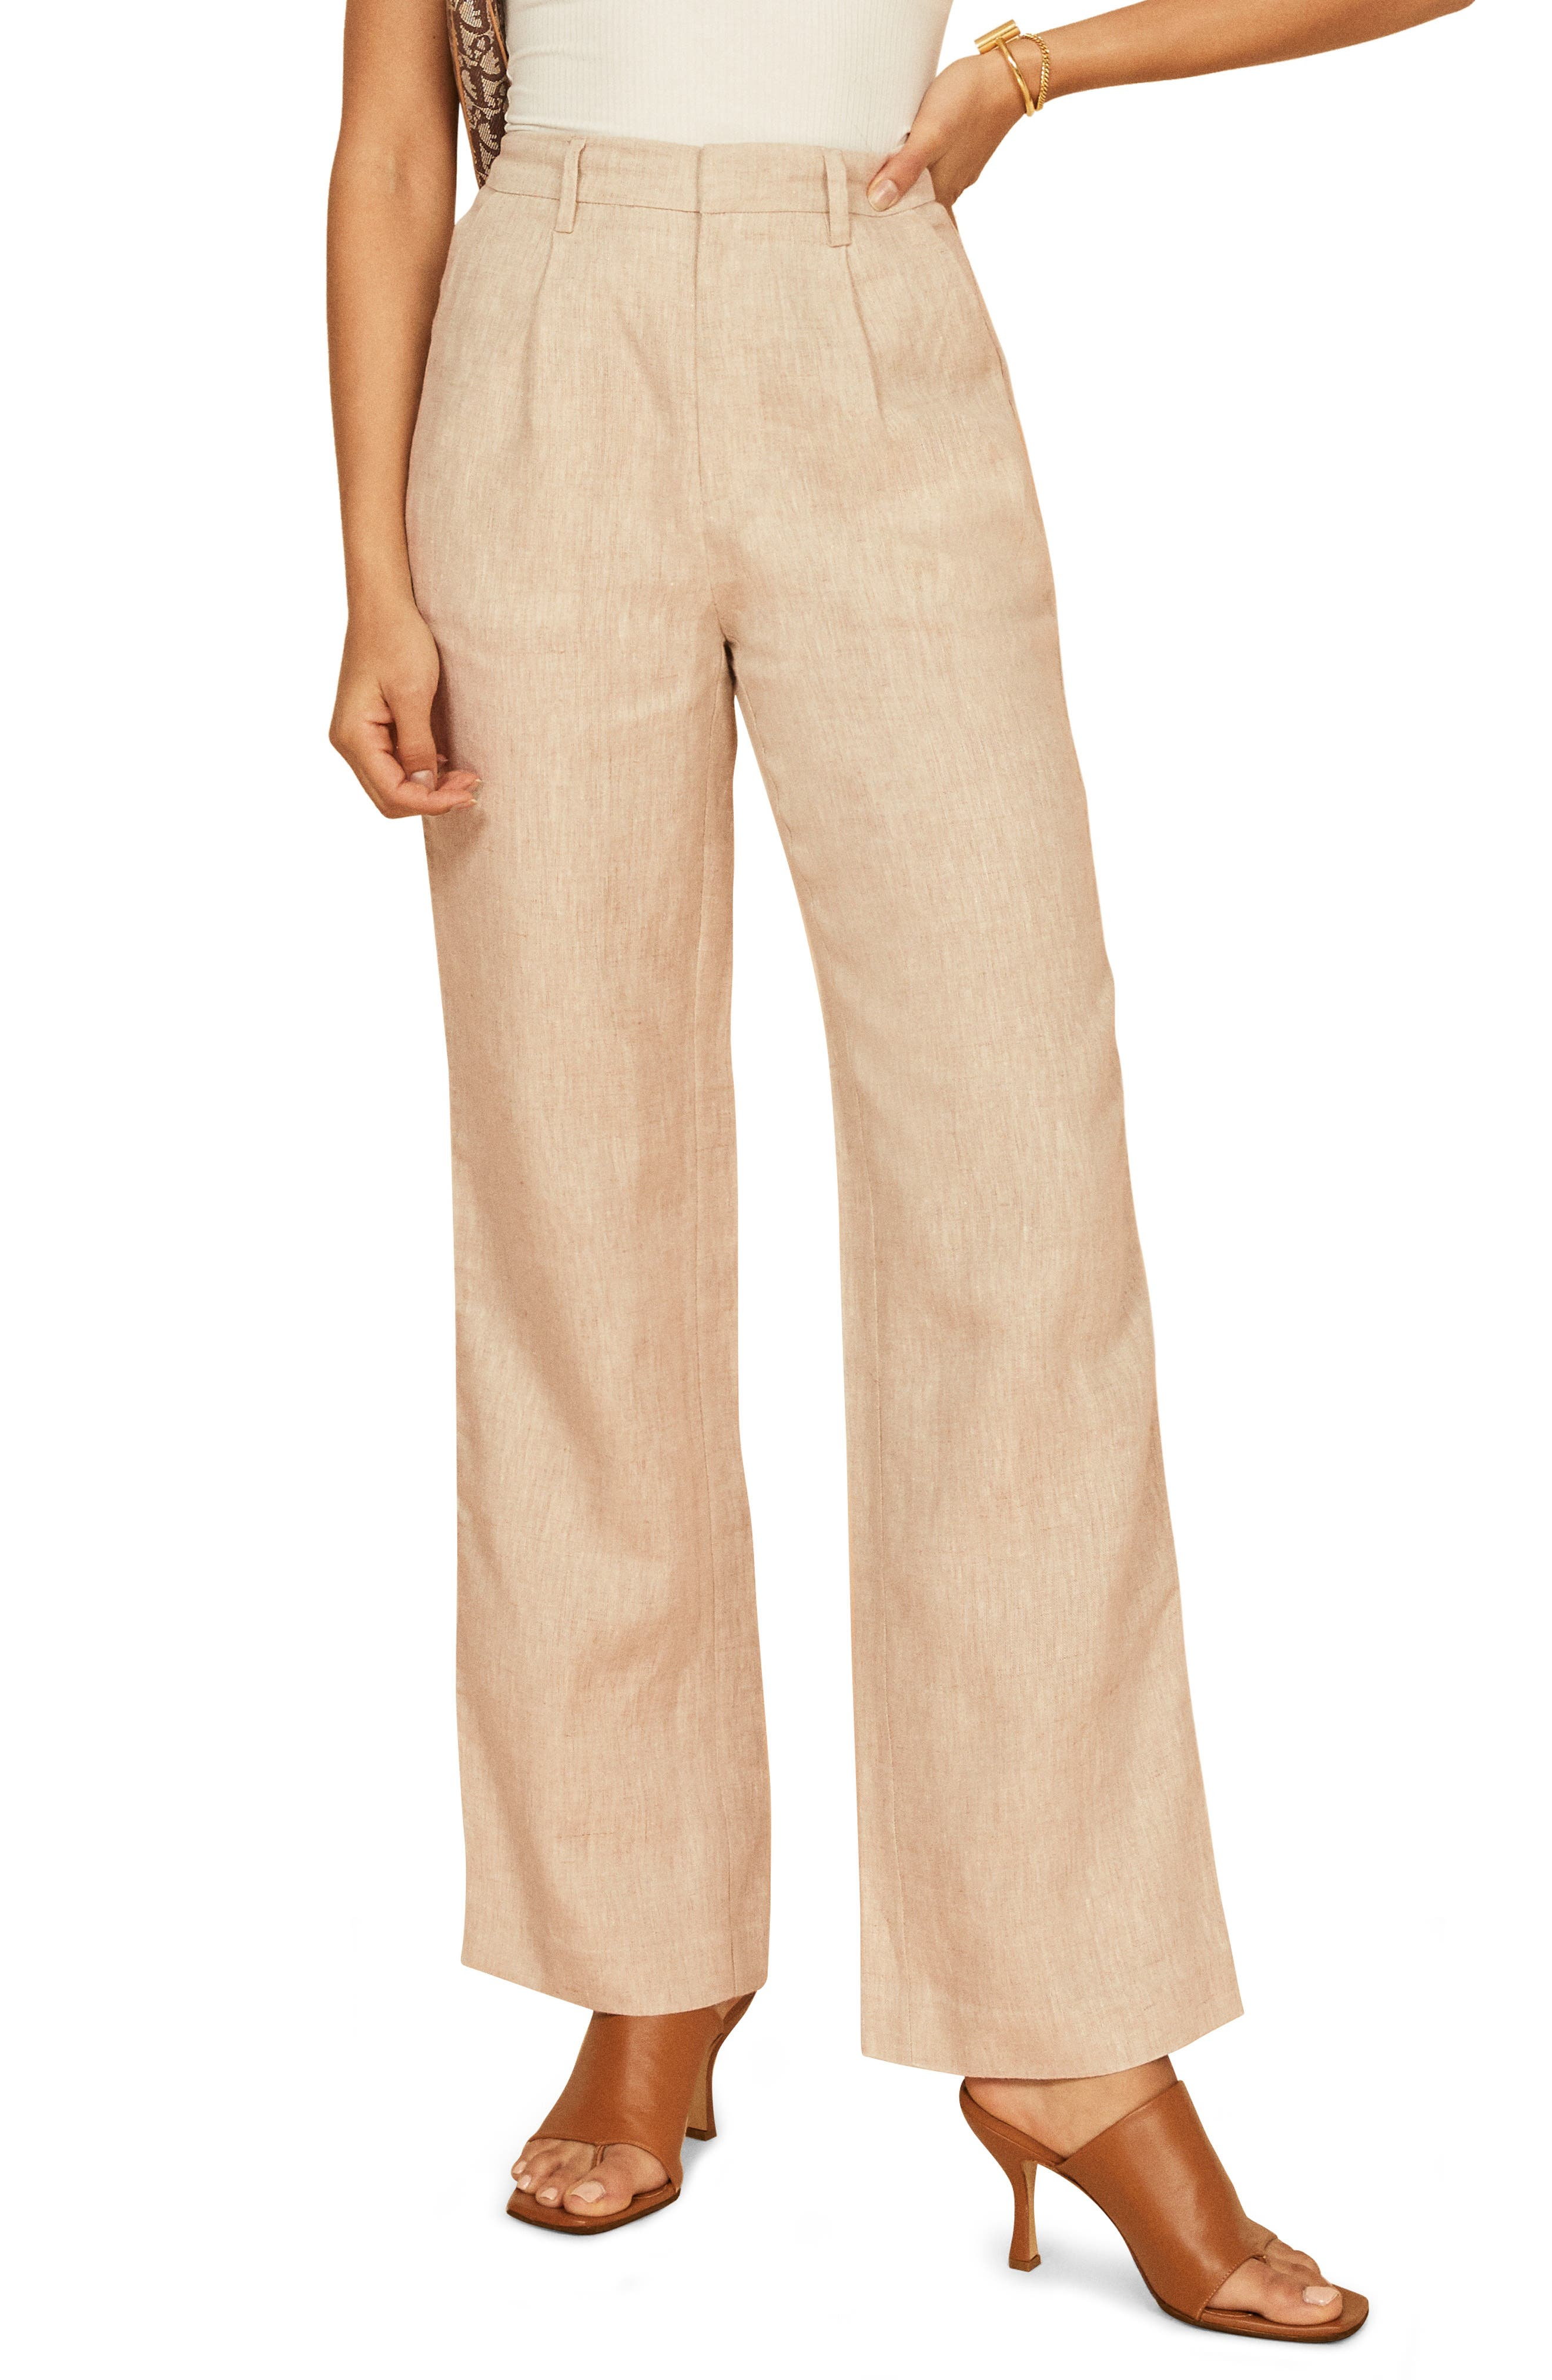 Wide-leg pants cut from lightweight linen complete your look with effortlessly chic and streamlined style. Style Name: Reformation Cello Wide Leg Linen Pants. Style Number: 6054608 1. Available in stores.